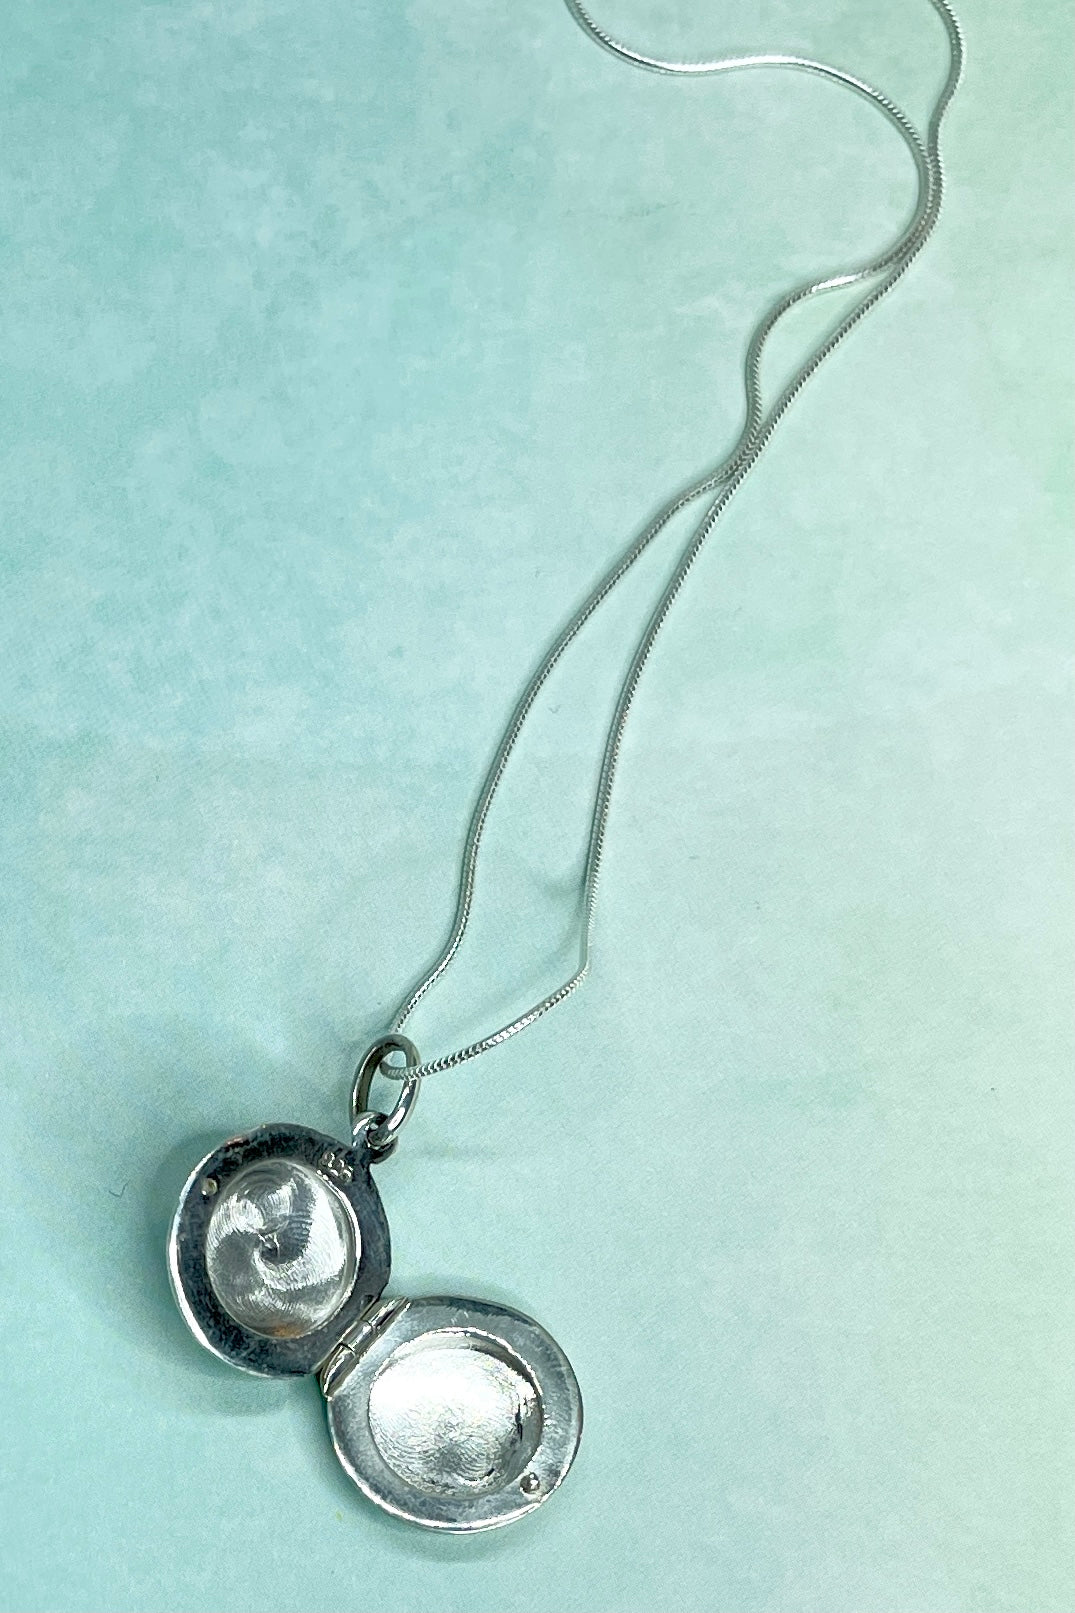 Keep your secrets or loves in the Pendant Locket with Black Stone. It opens to allow you to pop in pics